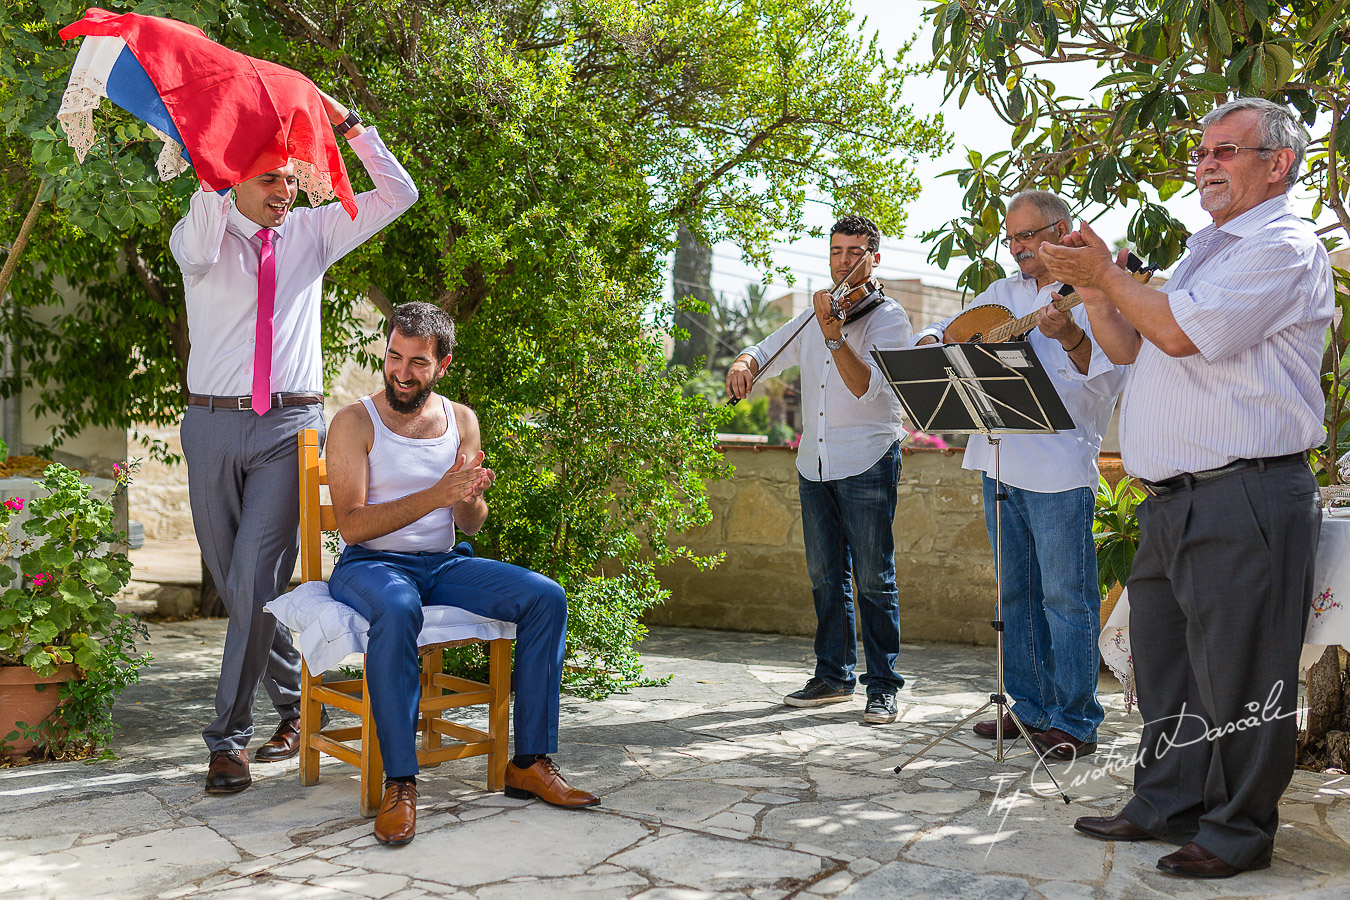 Traditions captured at Traditional Cyprus Wedding in Tochni, Larnaca.